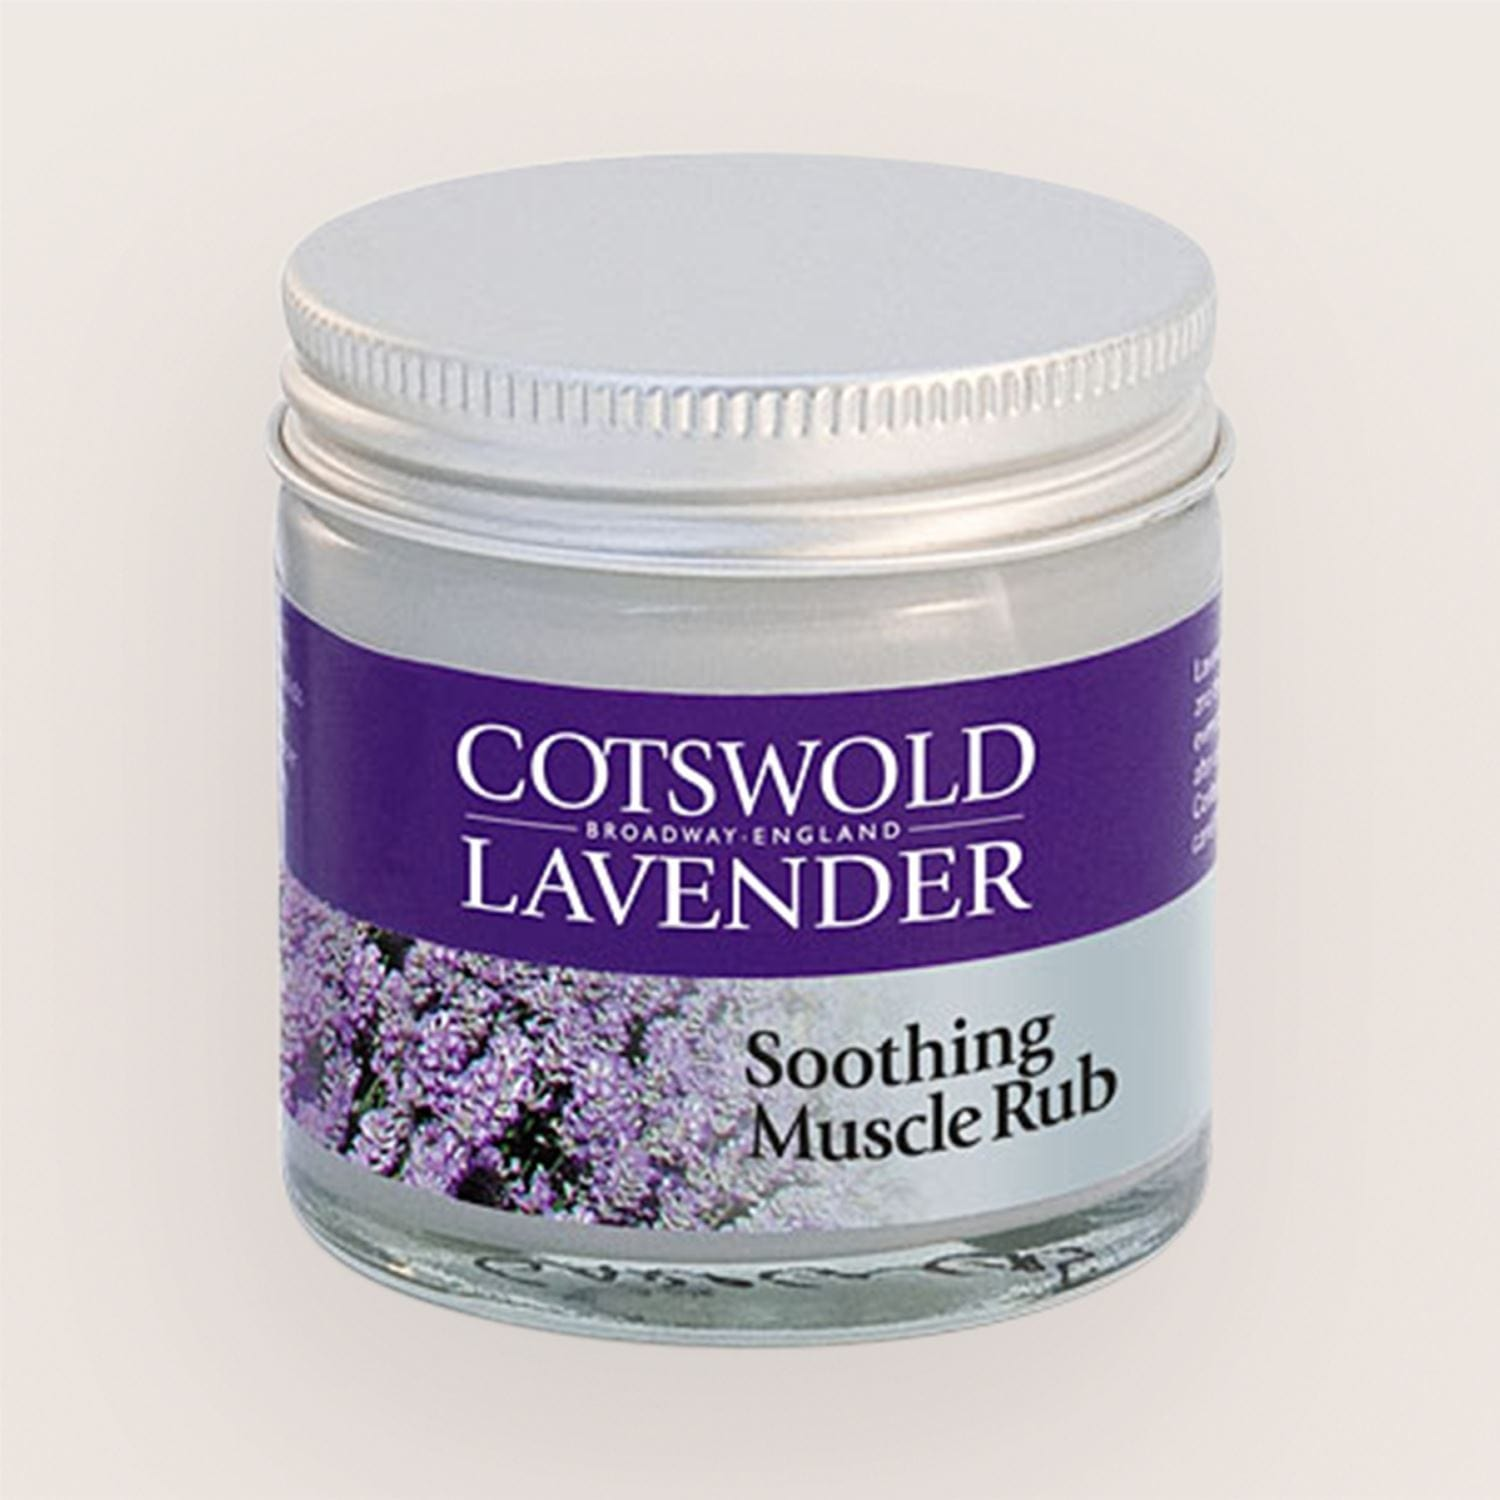 Cotswold Lavender Soothing Muscle Rub 60g